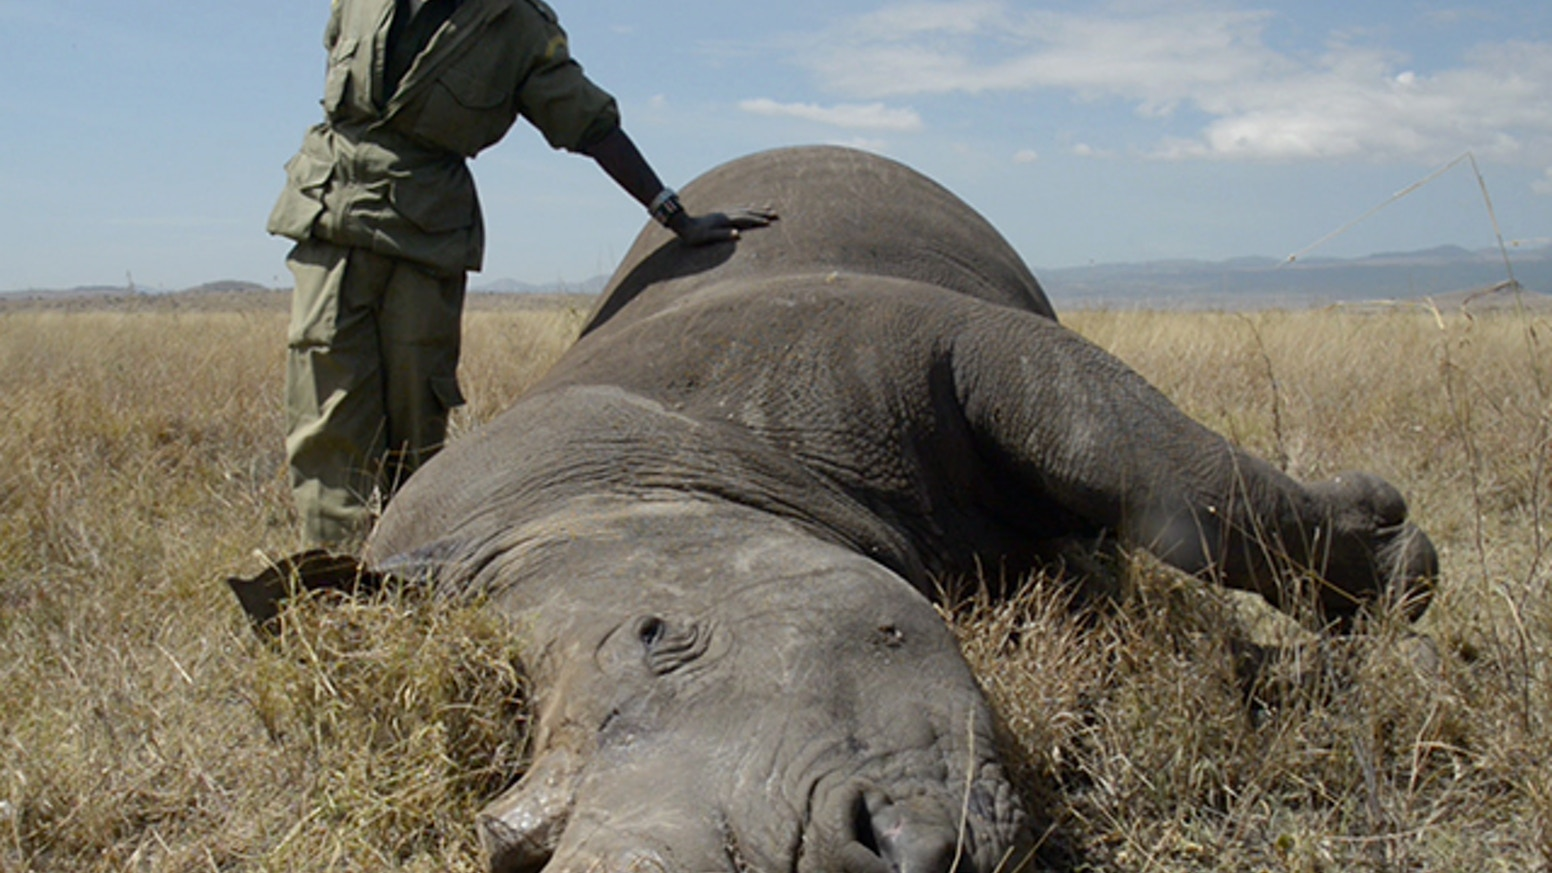 The Last Animals: A documentary film by Kate Brooks about Africa's poaching epidemic.